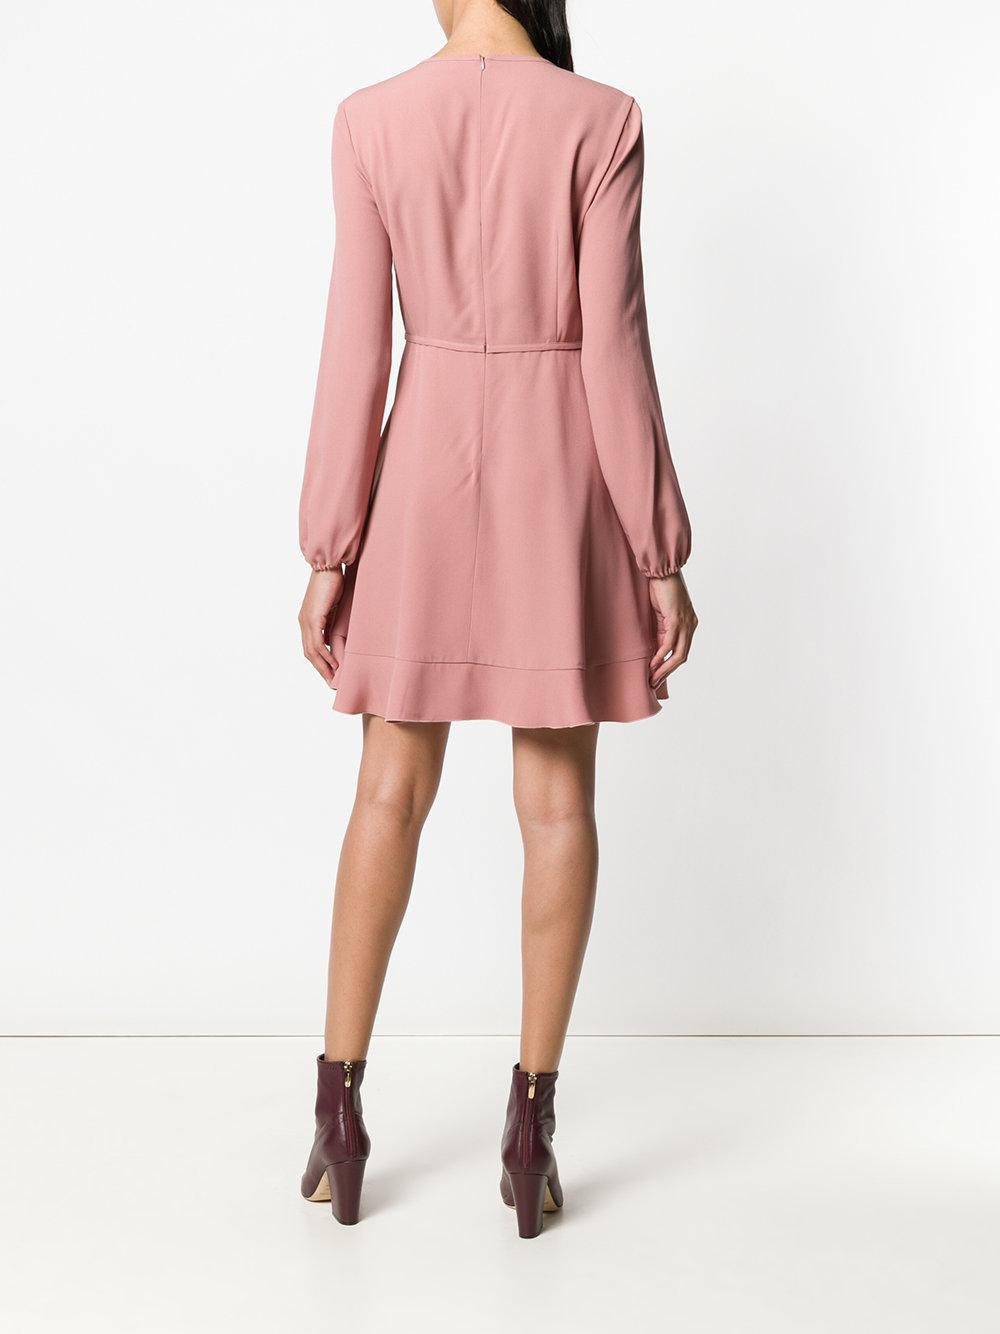 Discount Visit New Pictures Cheap Online bow-front skater dress - Pink & Purple Red Valentino Amazing Price For Sale Shop Offer Sale Online Best Seller Sale Online hH02W4X